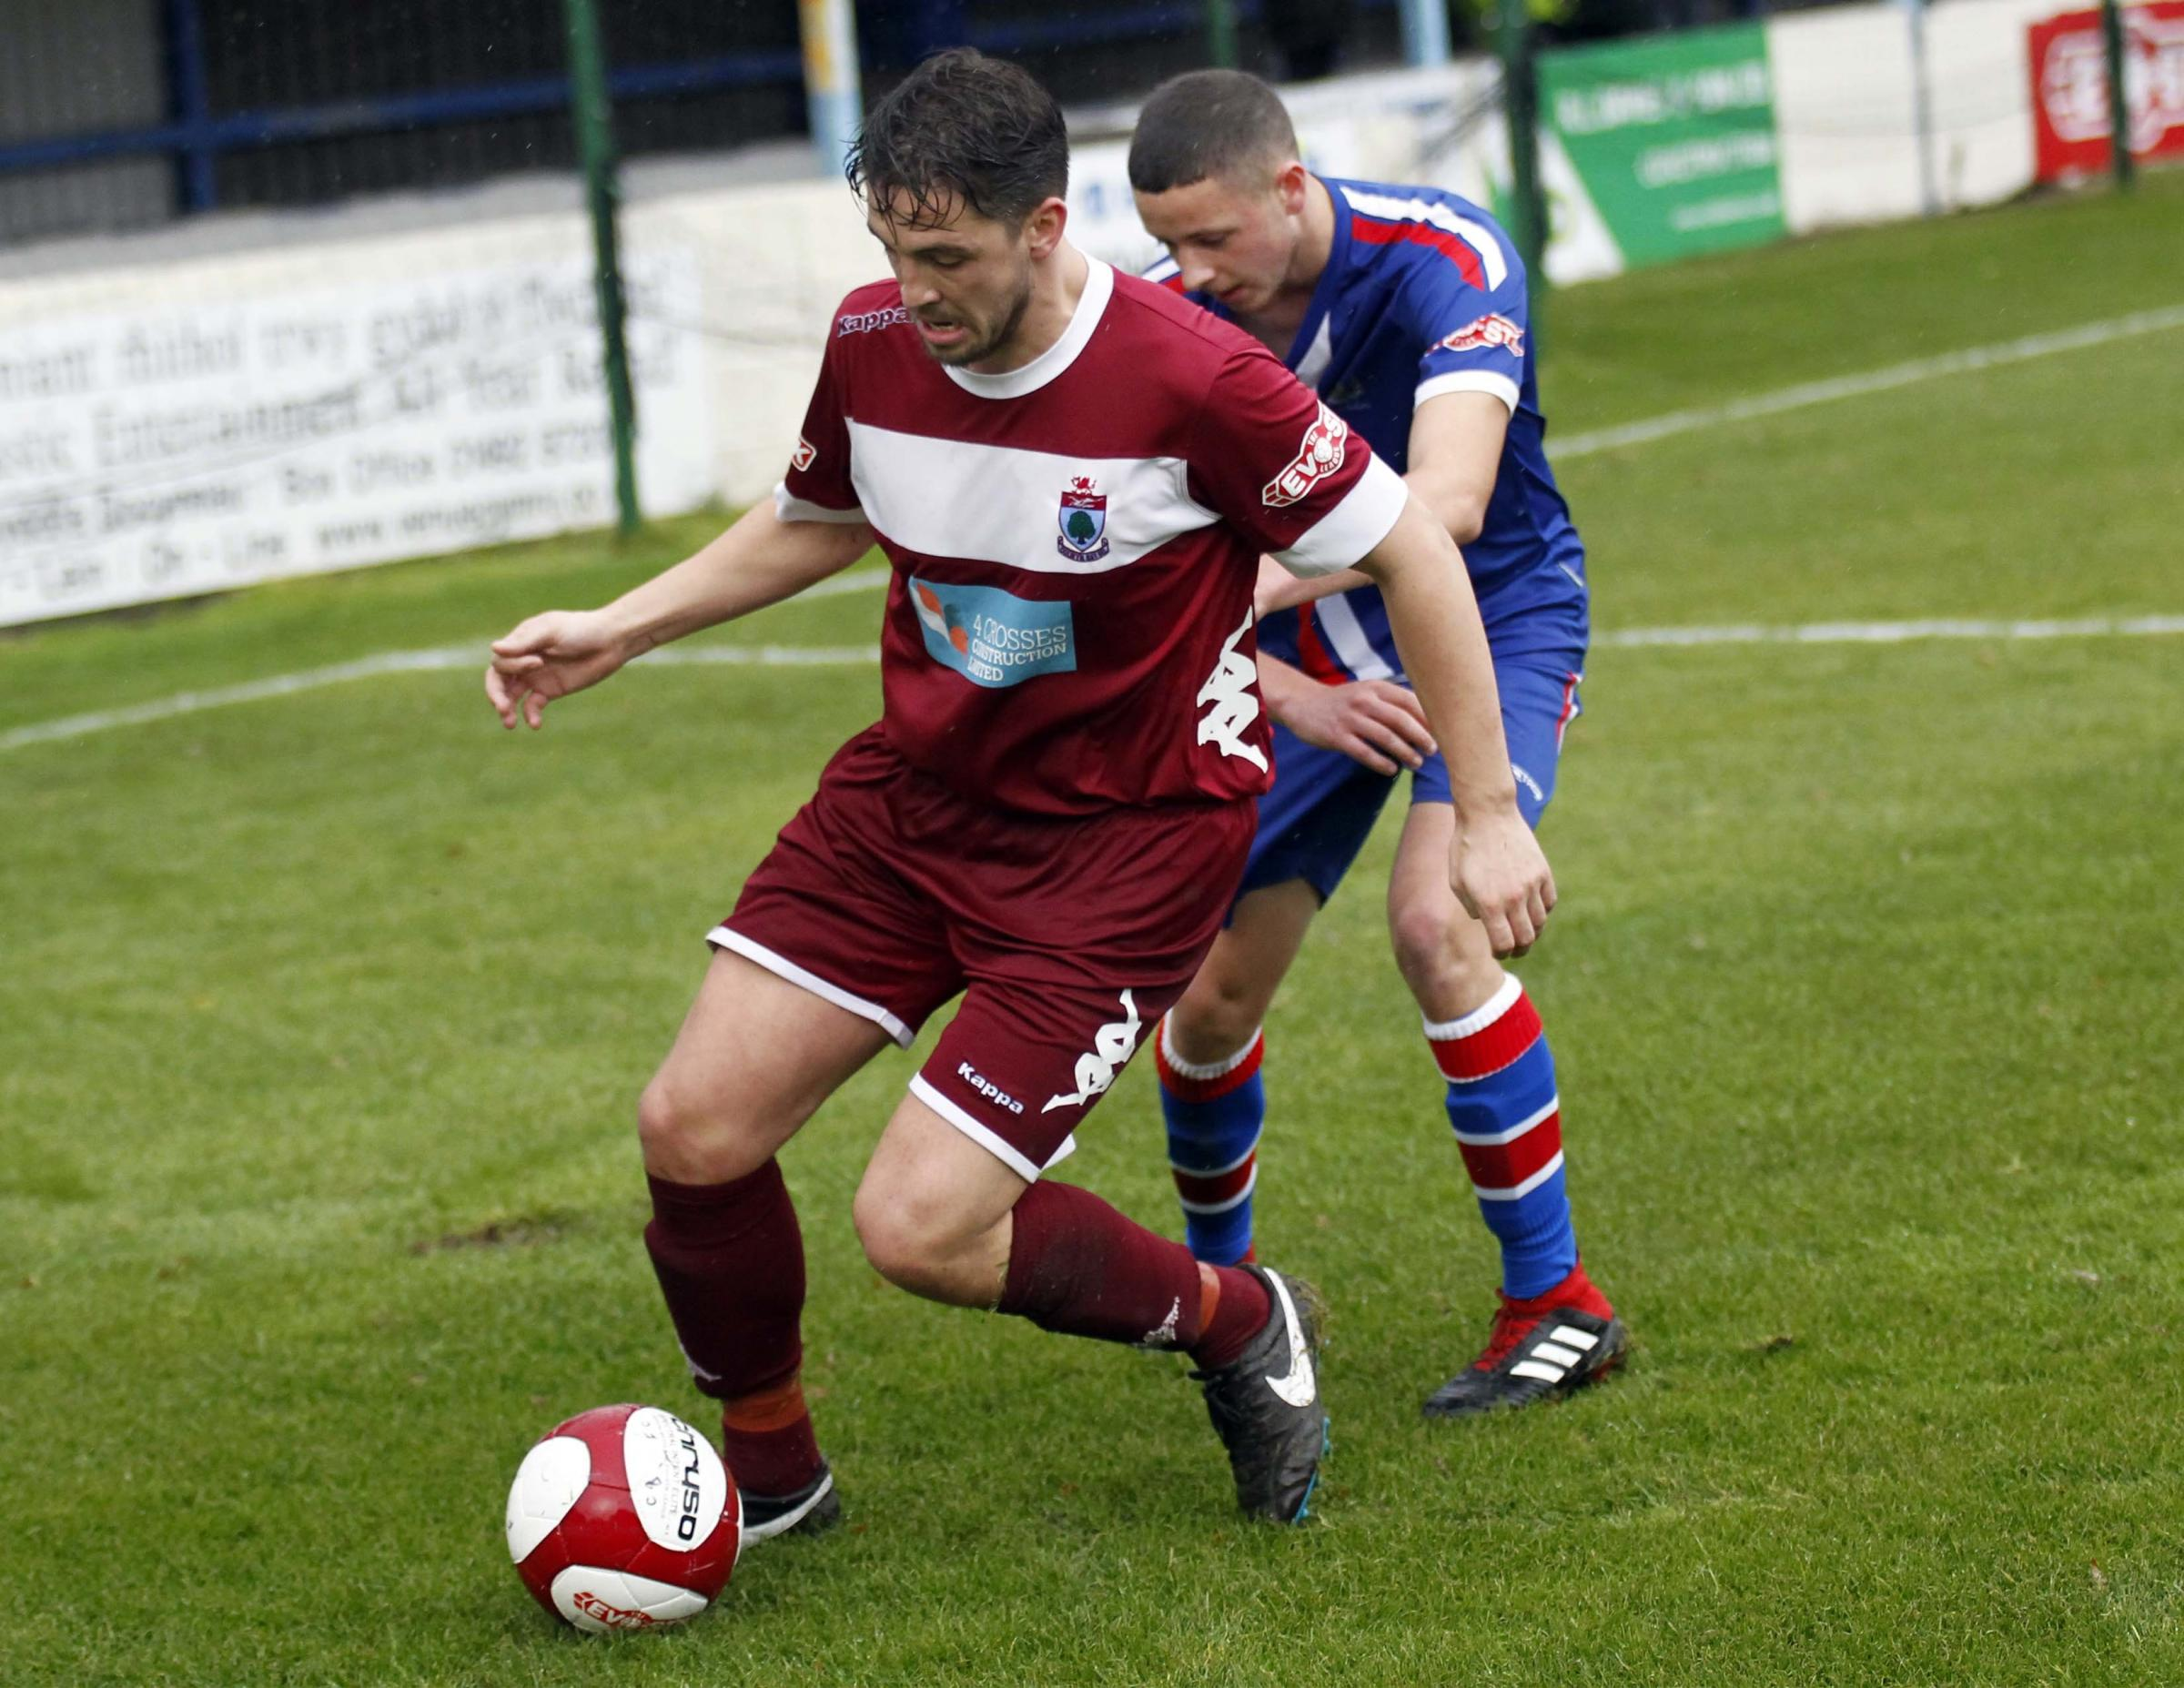 Ashley Woods netted Colwyn Bay's winner against Prescot Cables (Photo by Dave Thomas)